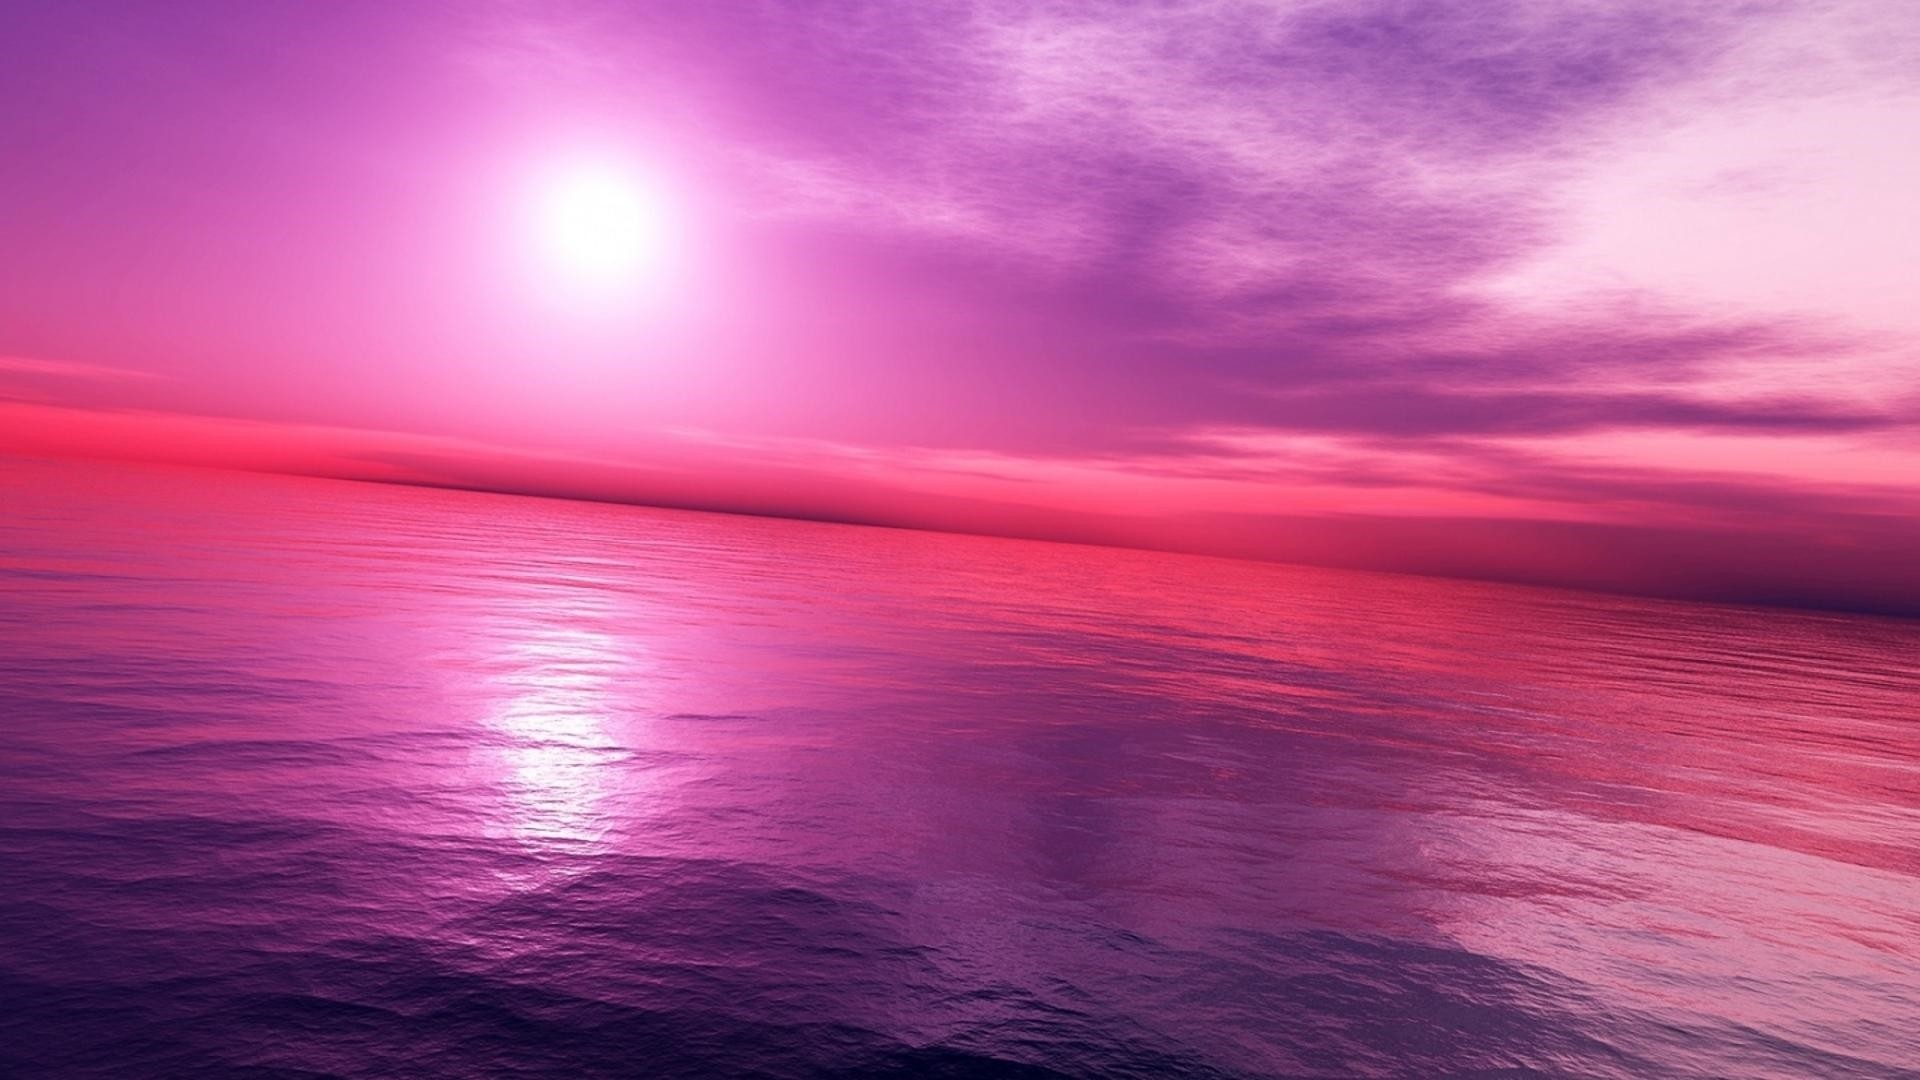 Pink And Purple Download Wallpaper